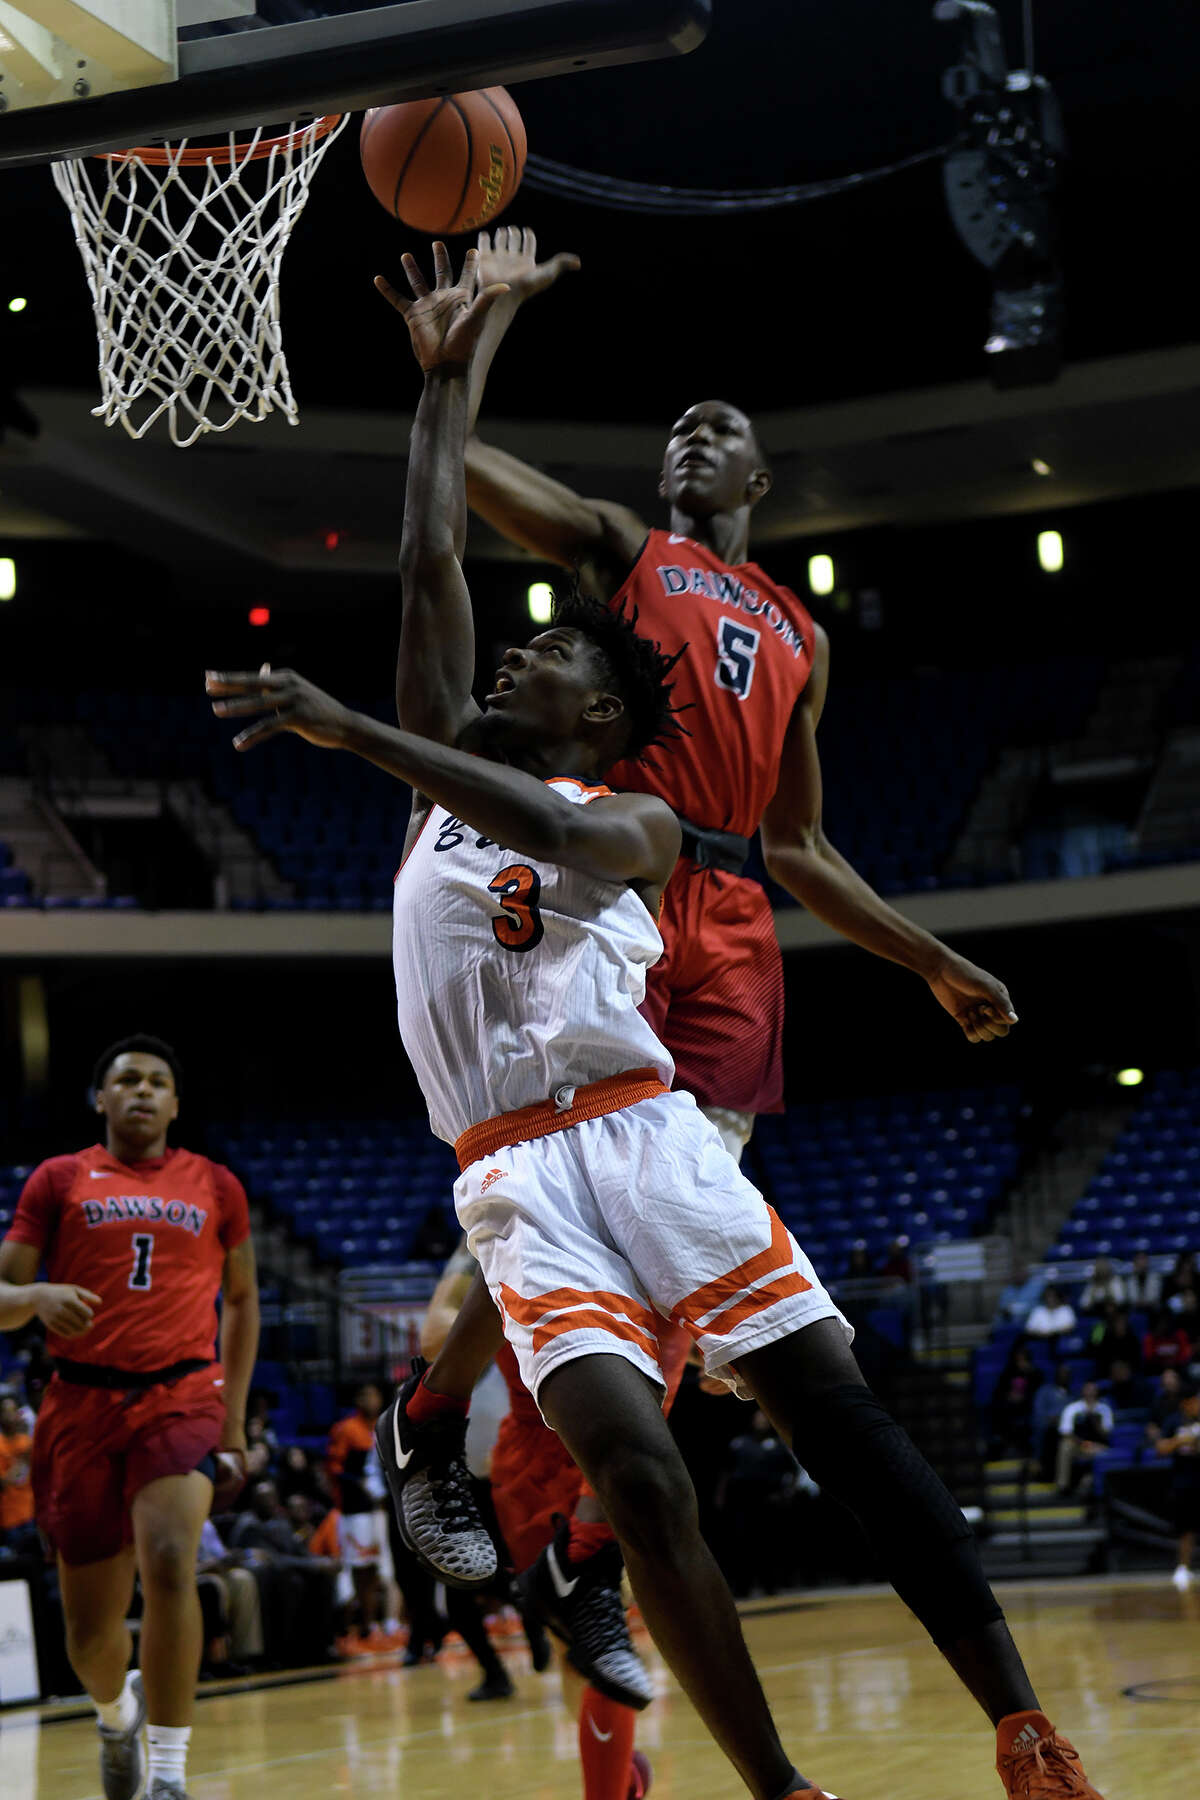 Fort Bend Bush senior forward Trevion Bradley shoots against Pearland Dawson senior forward Karl Nicholas (5) during the 1st quarter of their Class 6A Region III Boys Basketball semifinal at the Richard E. Berry Center in Cypress on Friday, March 3, 2017. (Photo by Jerry Baker/Freelance)